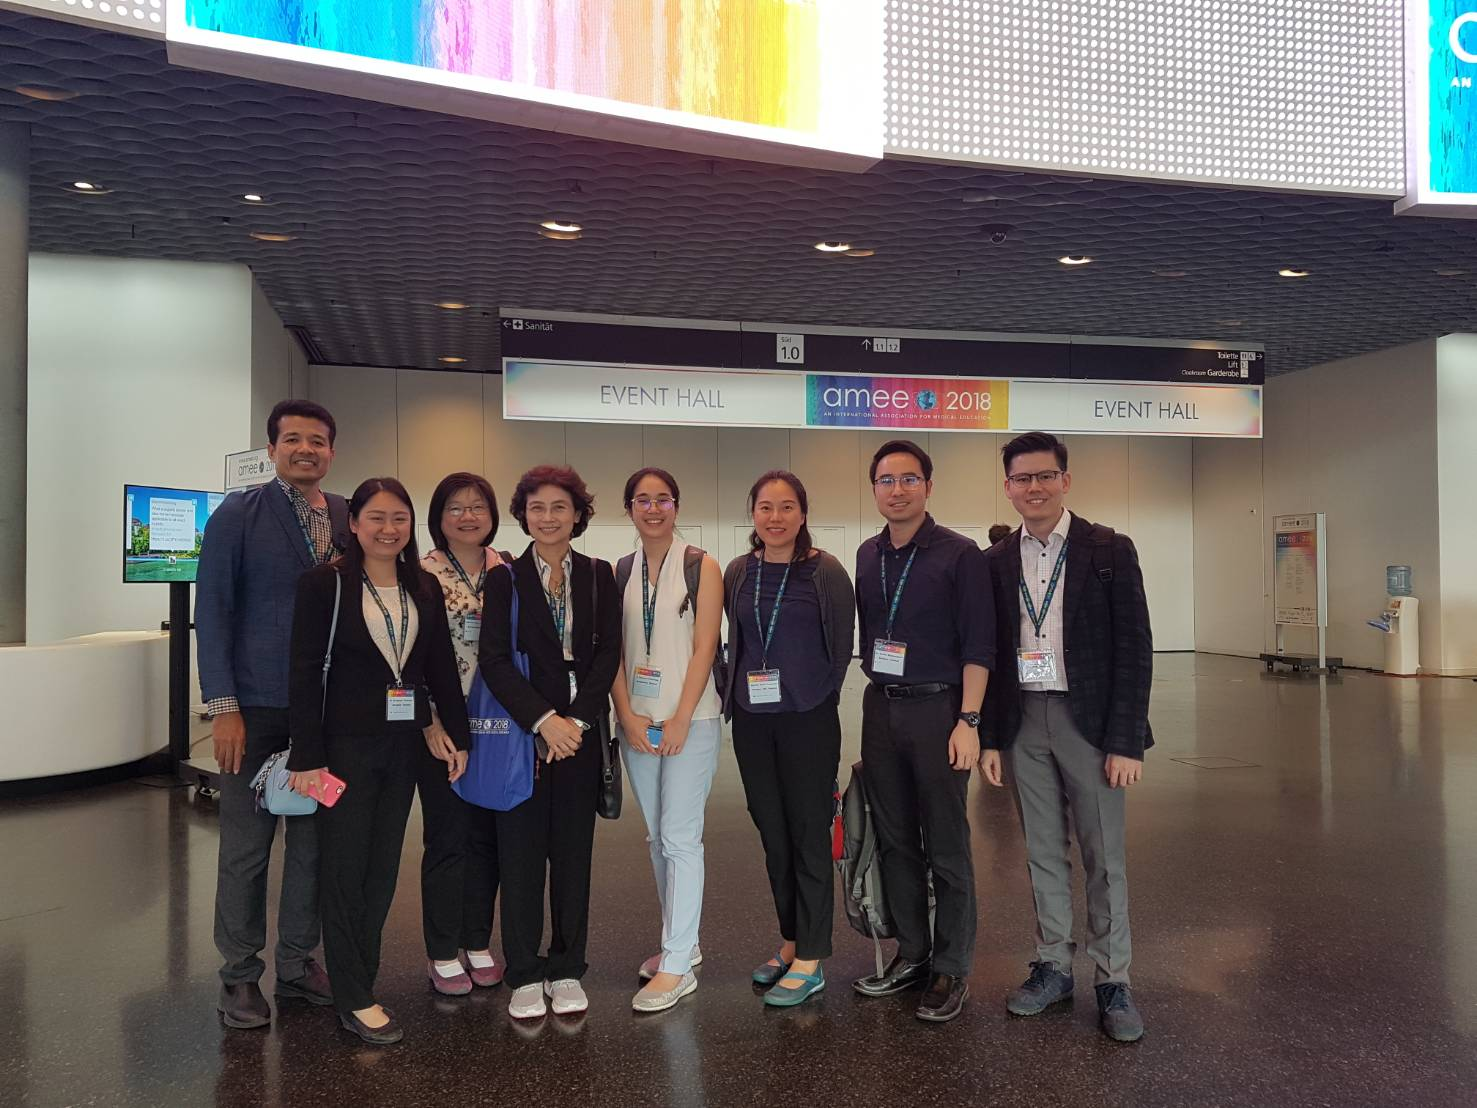 Siriraj Faculty Members Participate in AMEE 2018